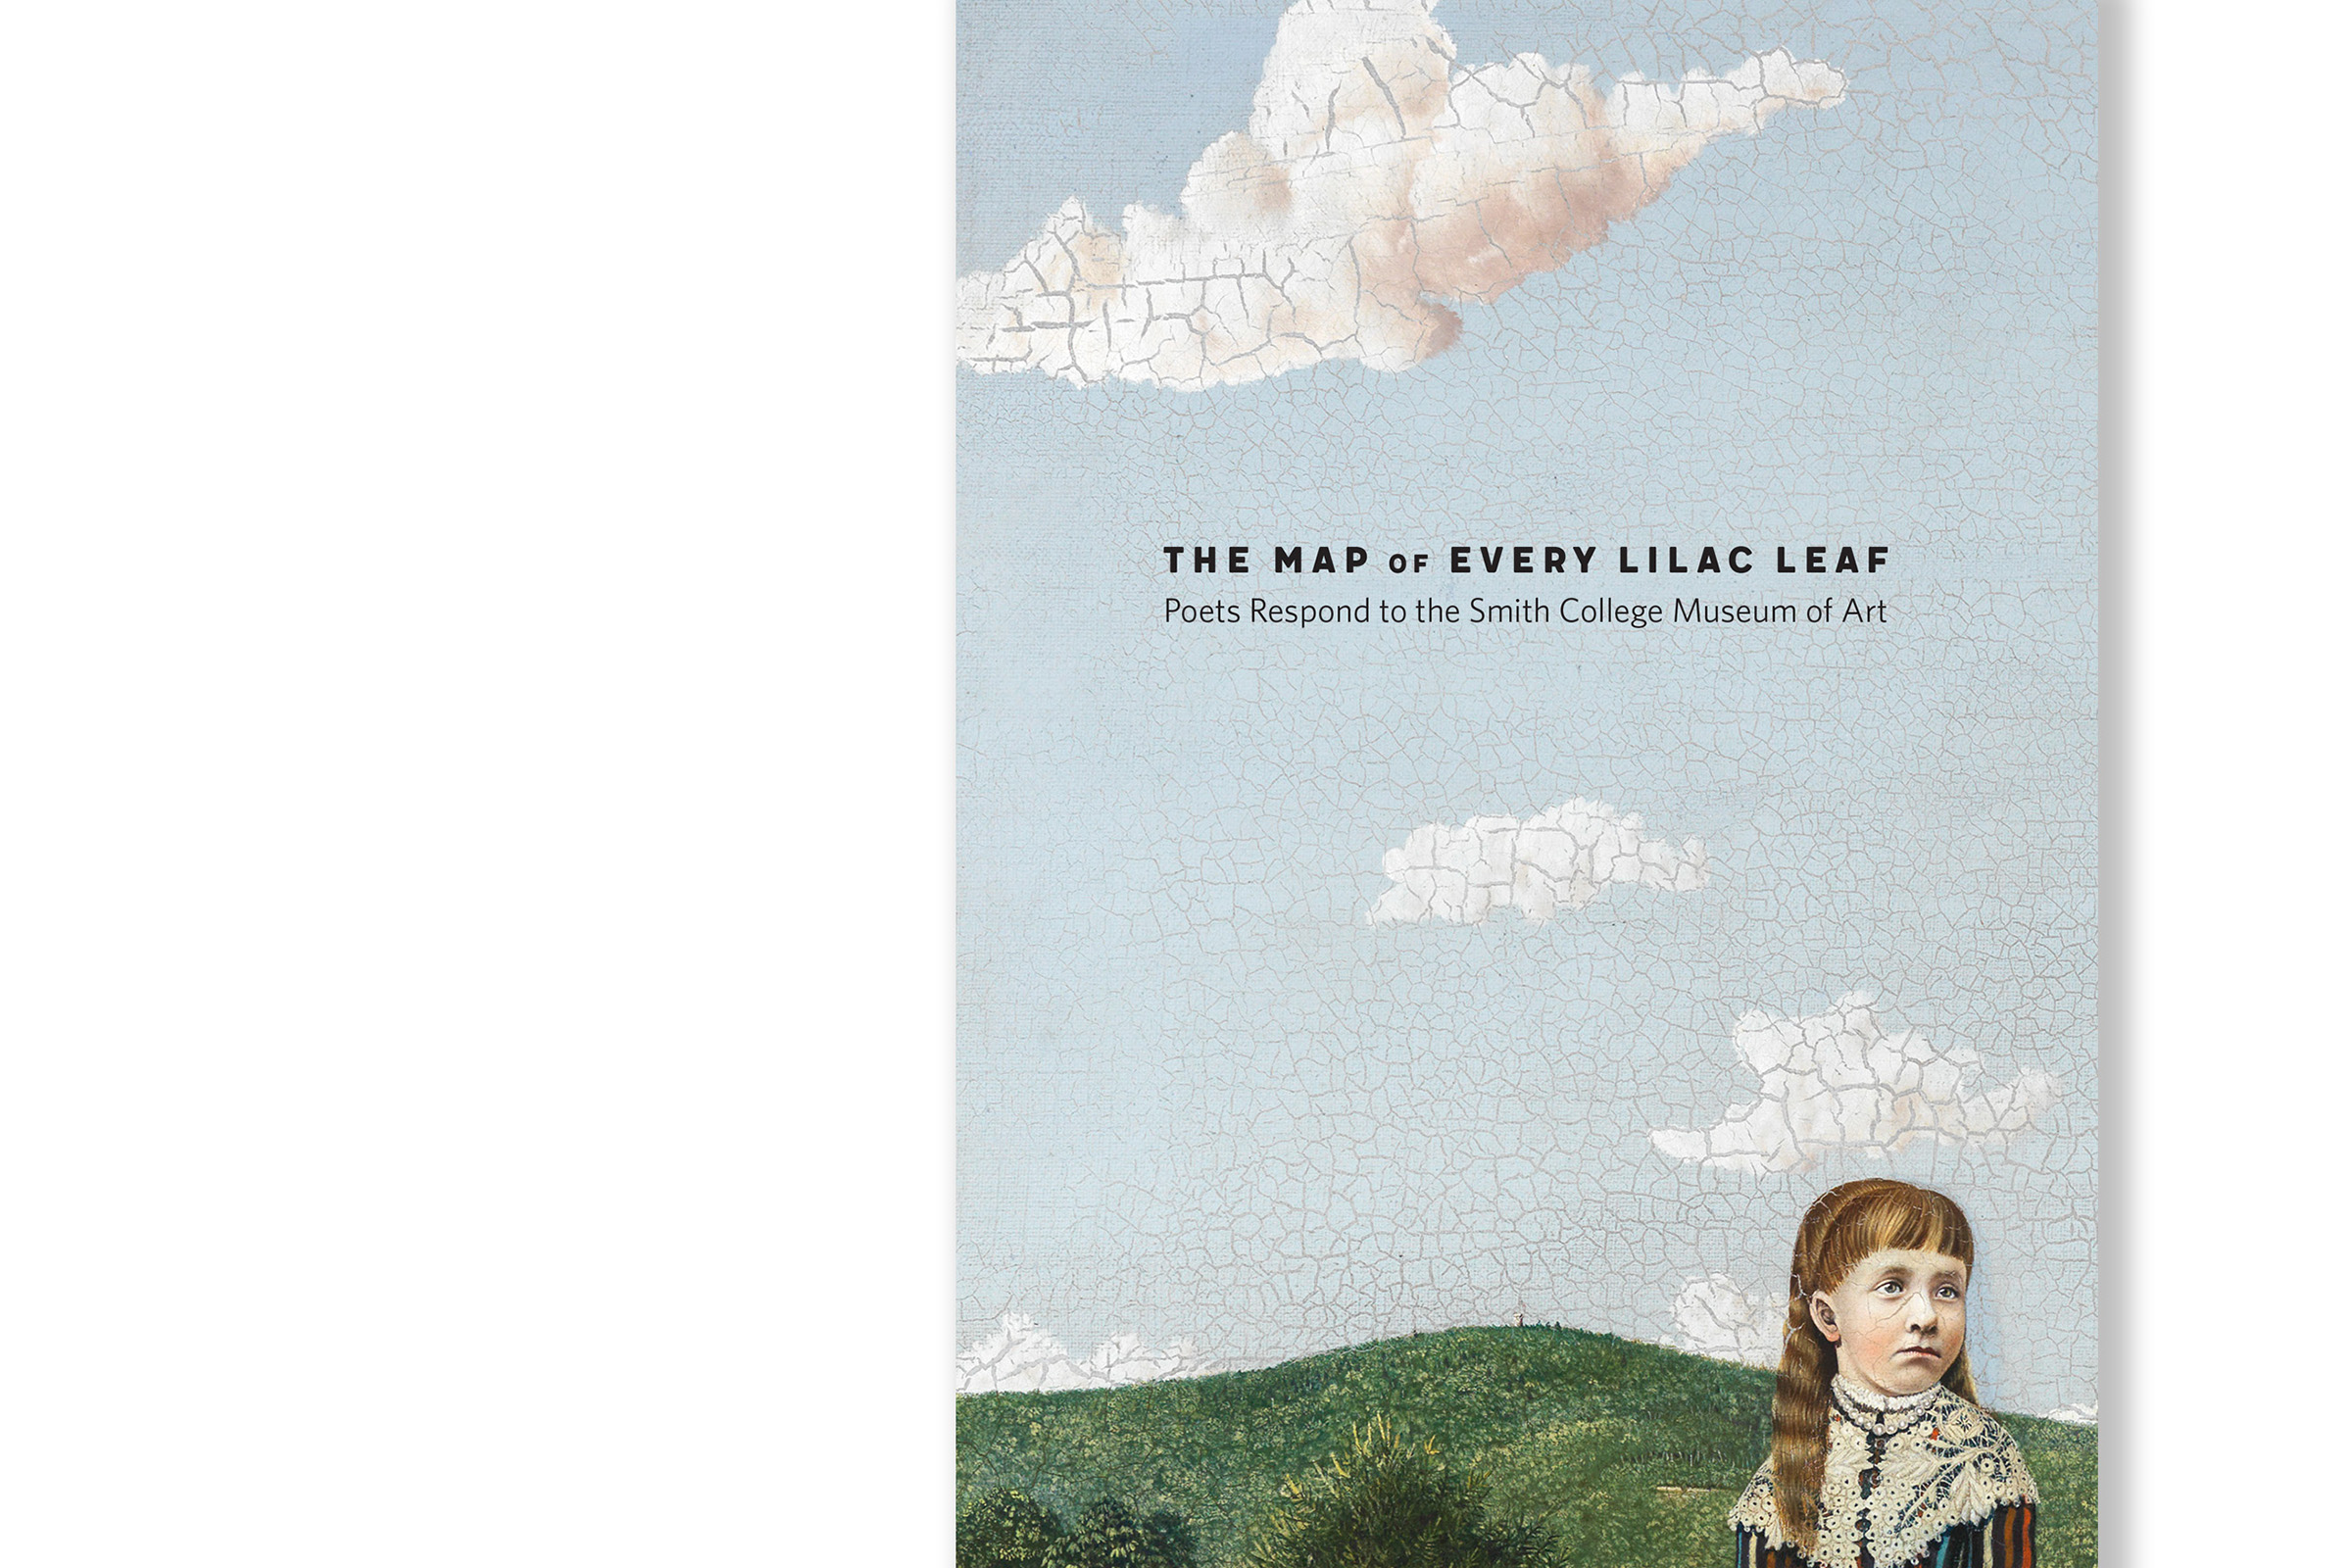 Book Cover image of painting detail of little girl and clouds